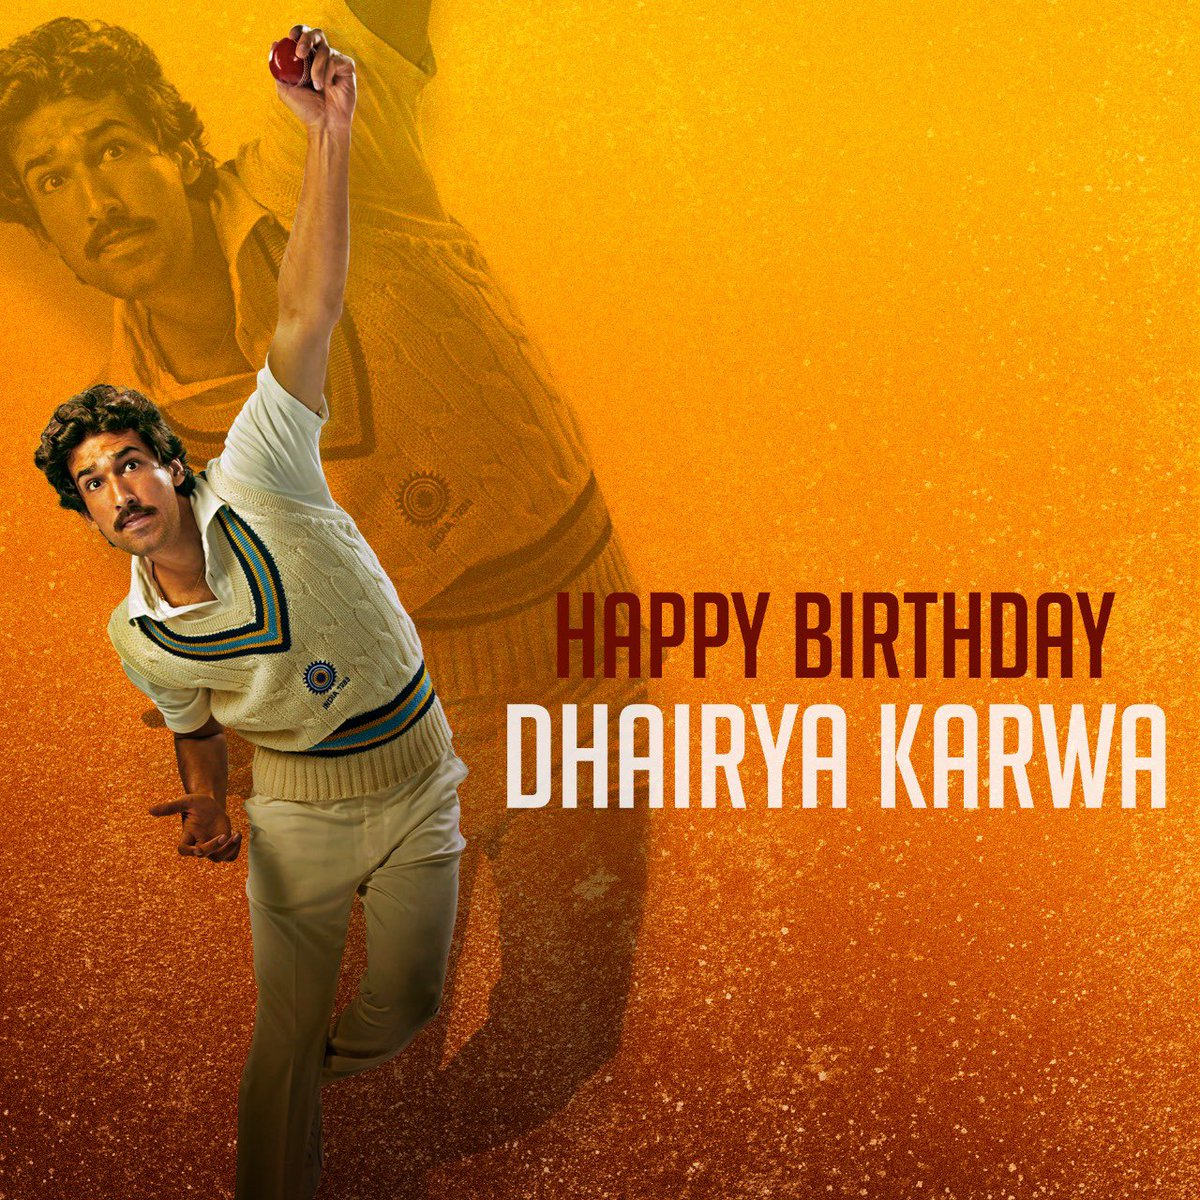 All set to inspire us all as the ever-resourceful,Ravi Shastri! Here's wishing #DhairyaKarwa a very happy birthday. #ThisIs83